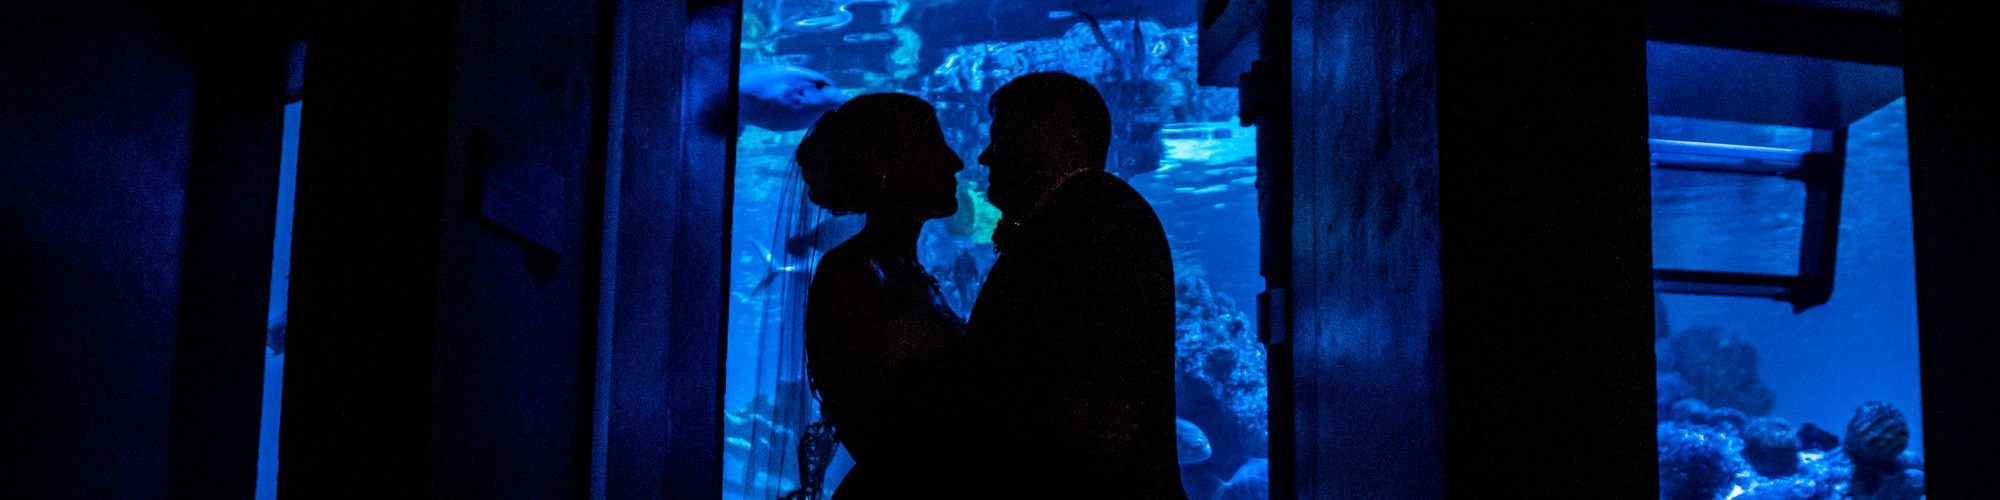 A New England Aquarium Wedding Chrissy Brian